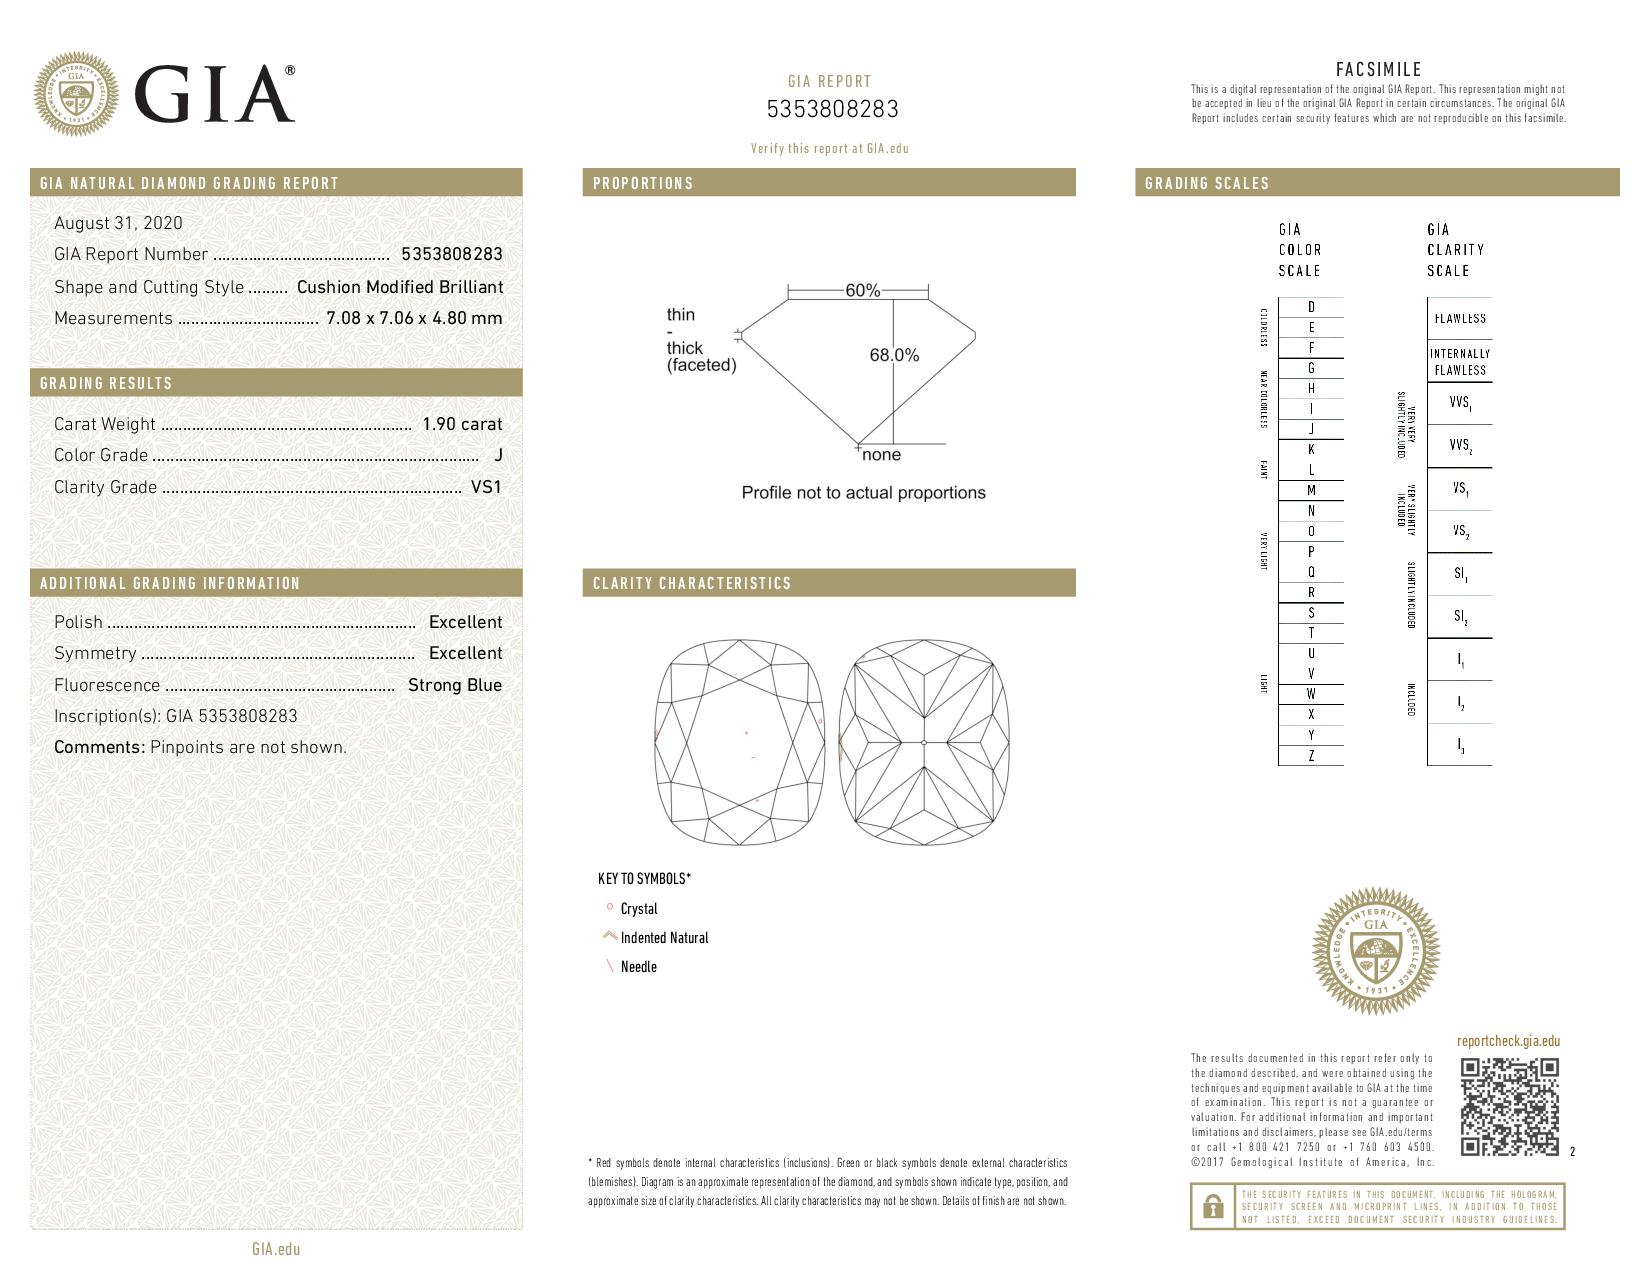 This is a 1.90 carat cushion shape, J color, VS1 clarity natural diamond accompanied by a GIA grading report.